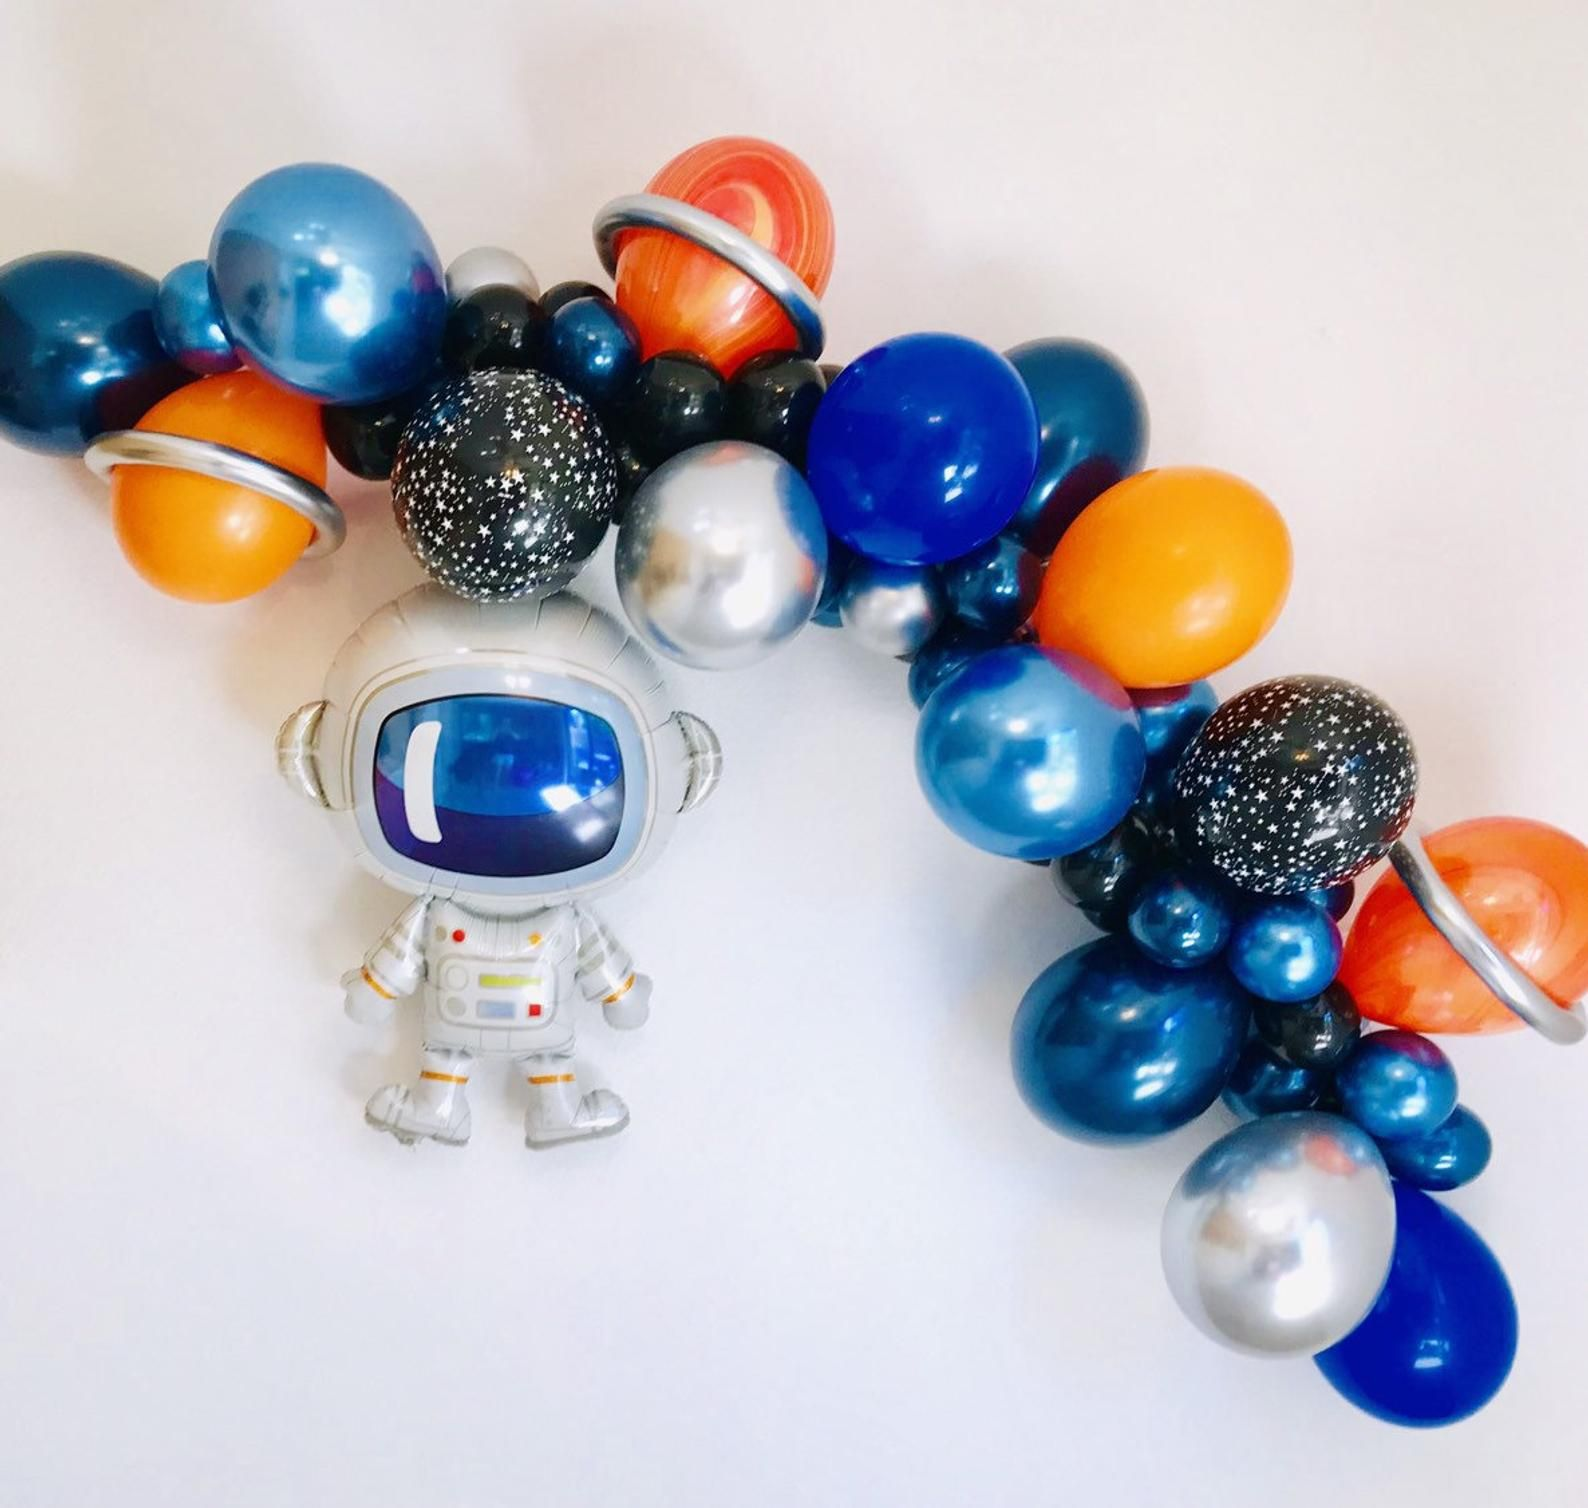 Space Balloon Garland, Space party, Astronaut Balloon, Outer Space Party, Astronaut, Blast off Birthday, Space Birthday, To the Moon